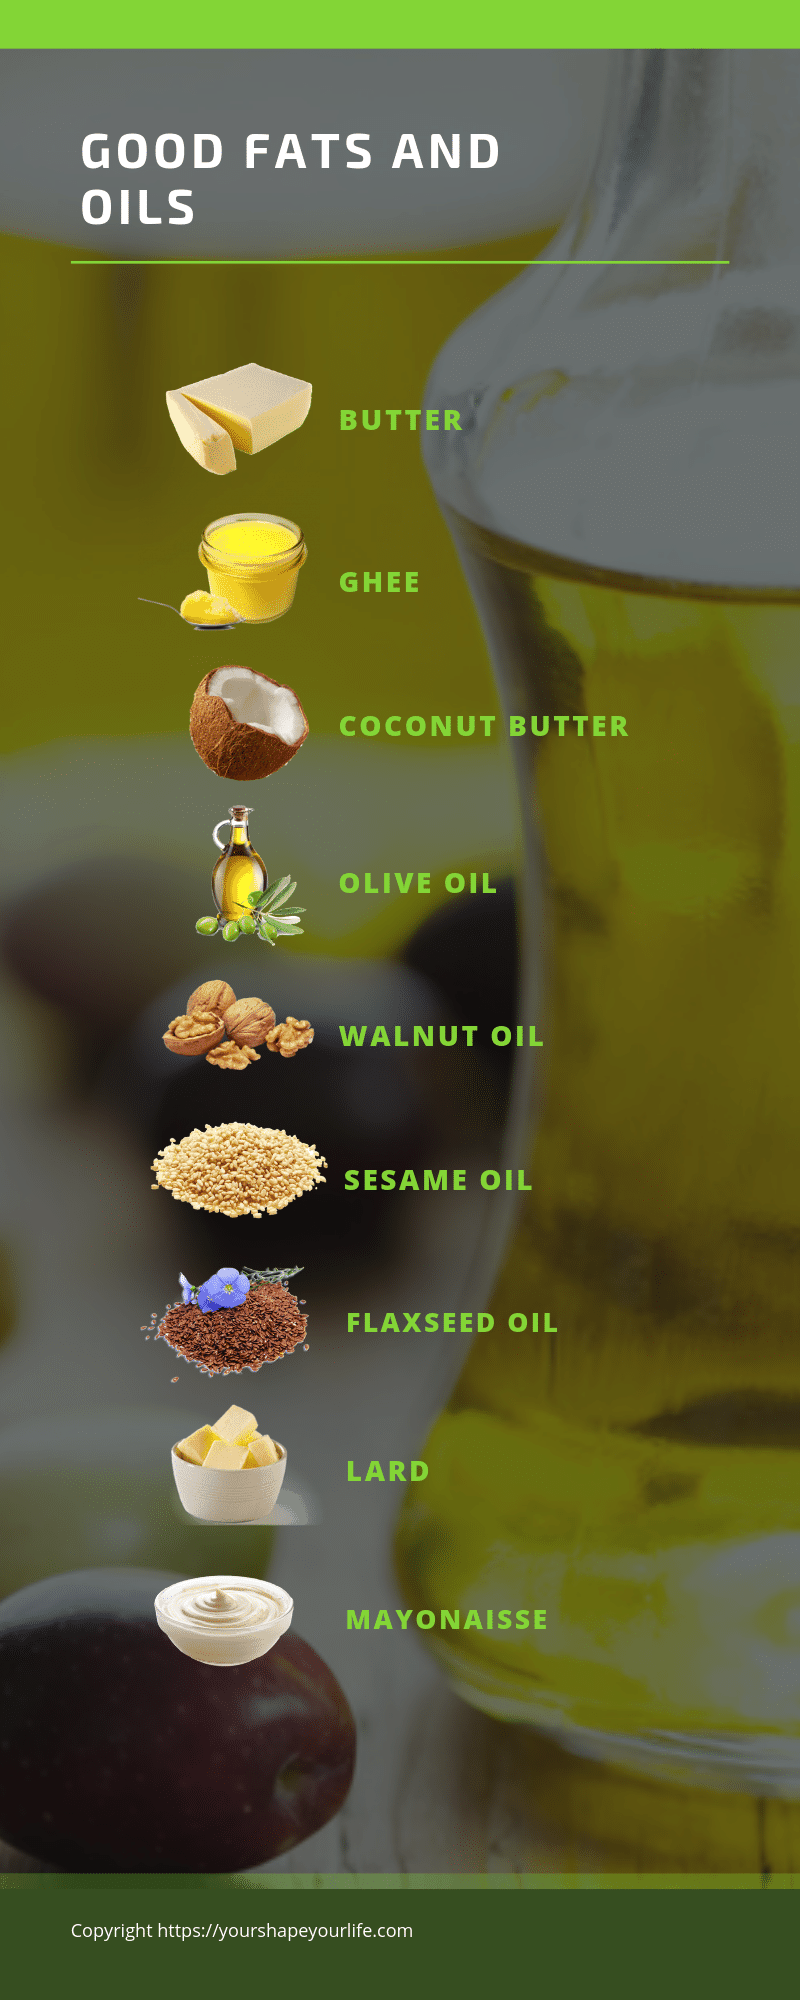 GOOD FATS AND OILS